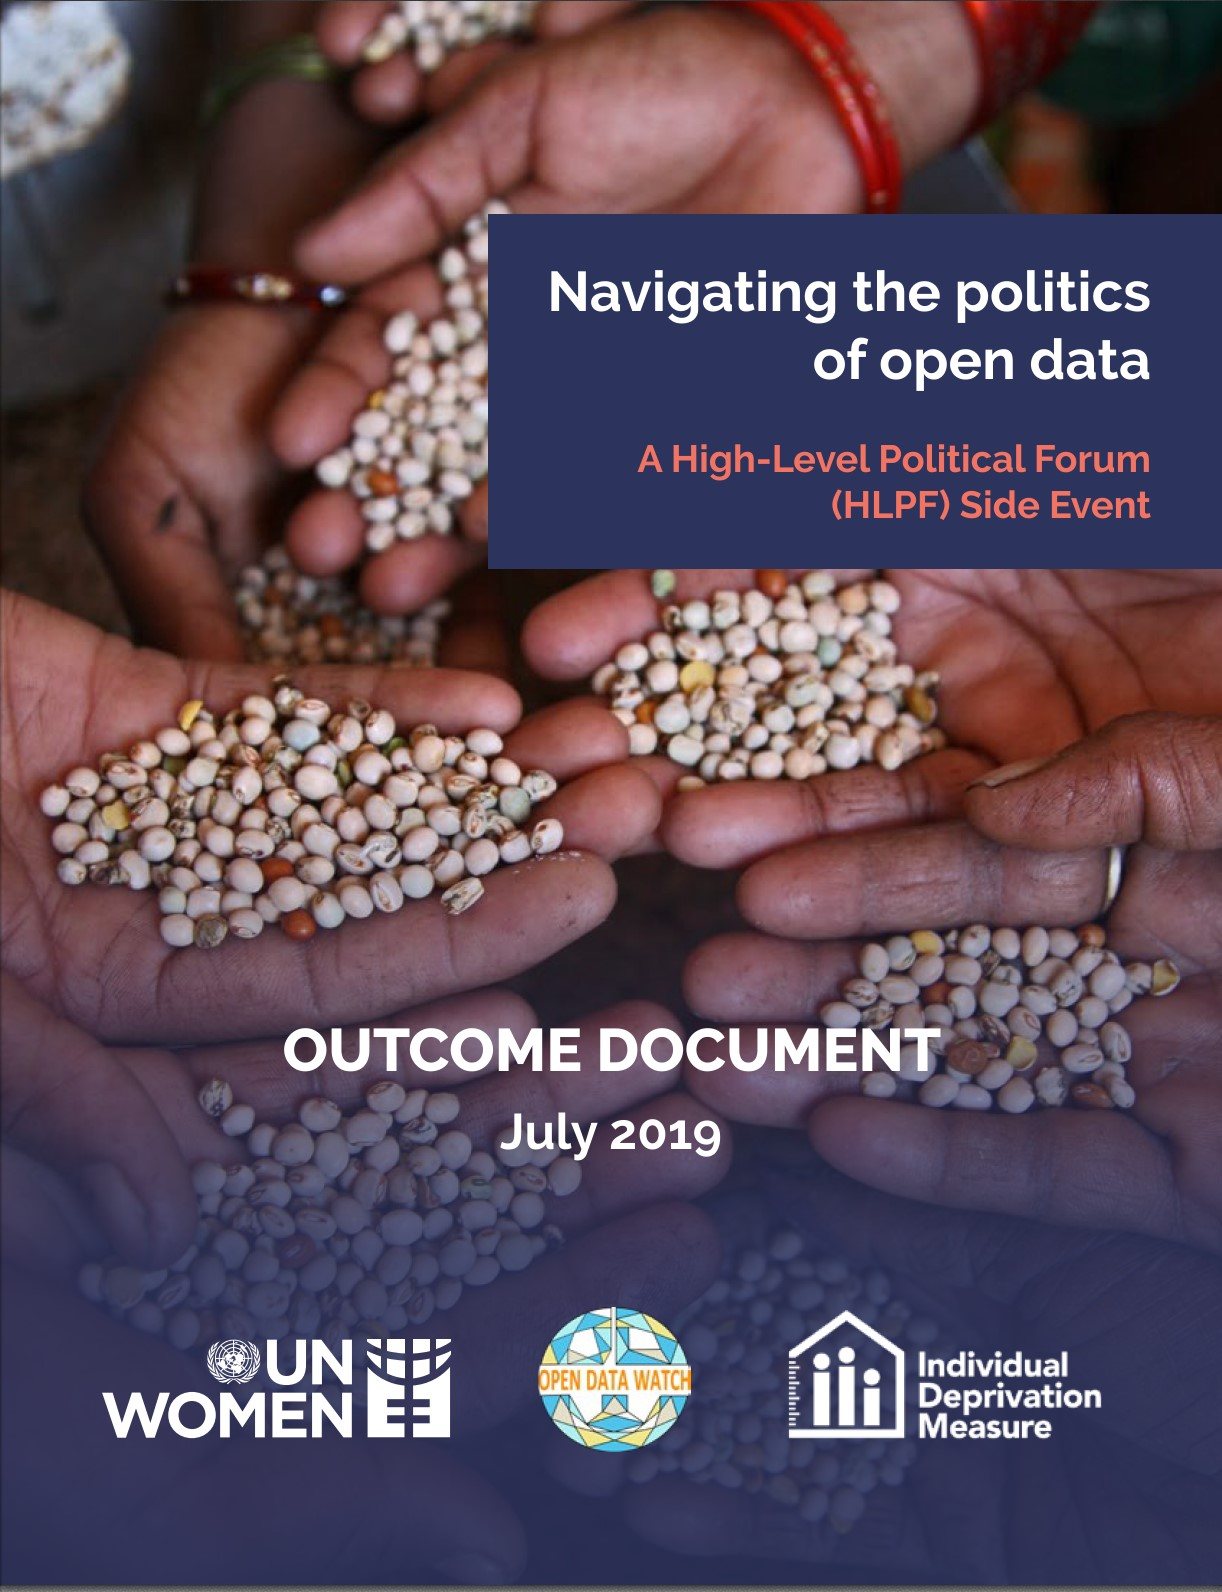 Navigating the politics of open data - Outcome Document - A High-Level Political Forum (HLPF) Side Event